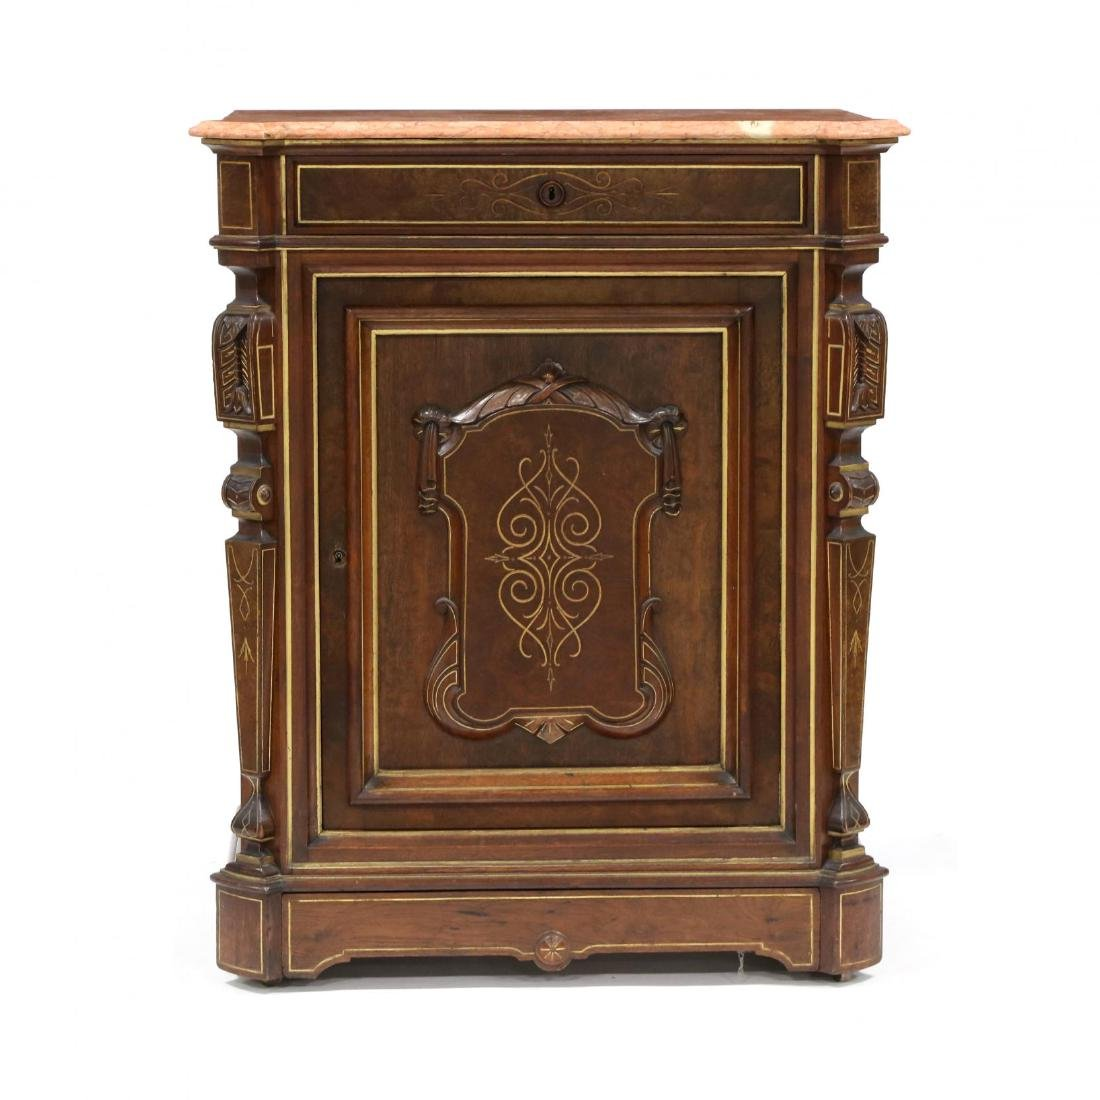 American Renaissance Revival Marble Top Cabinet